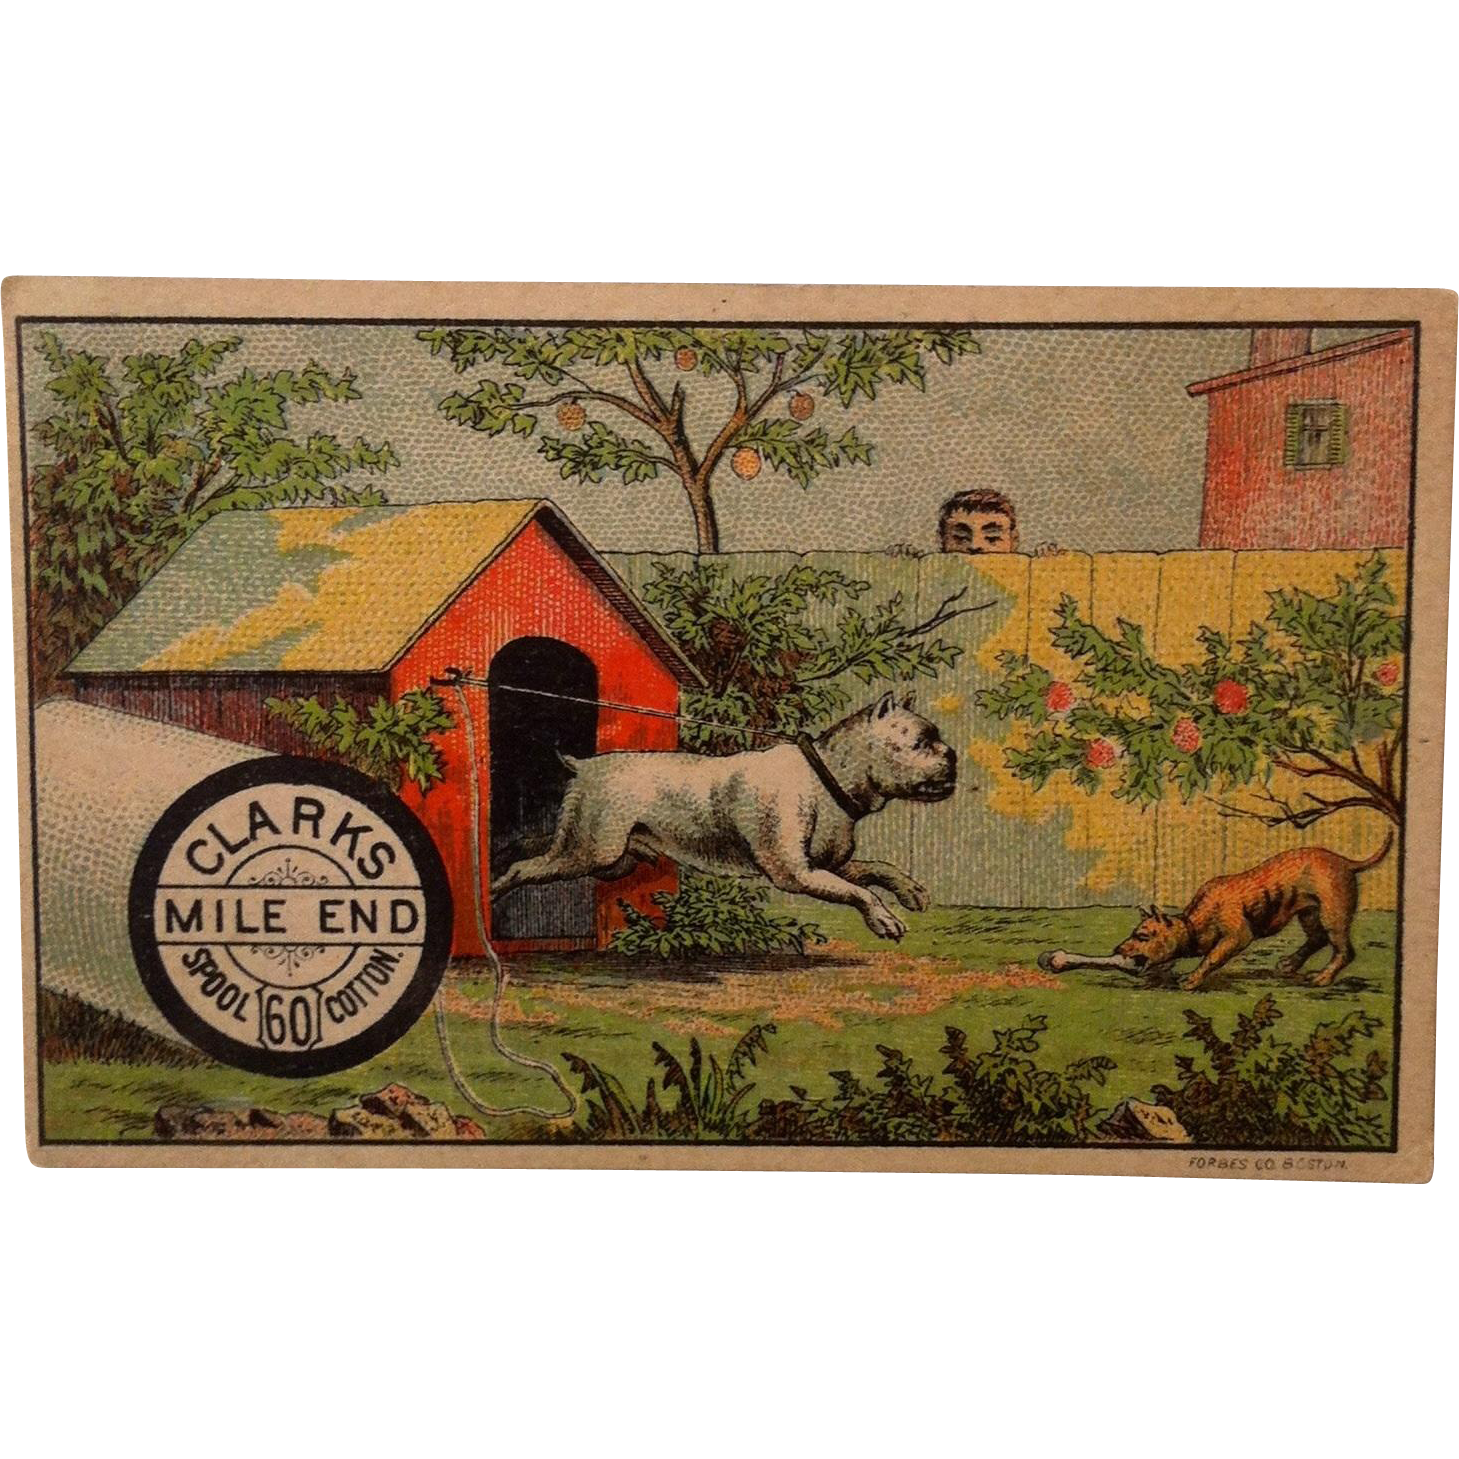 Clarks Mile End Trade Card